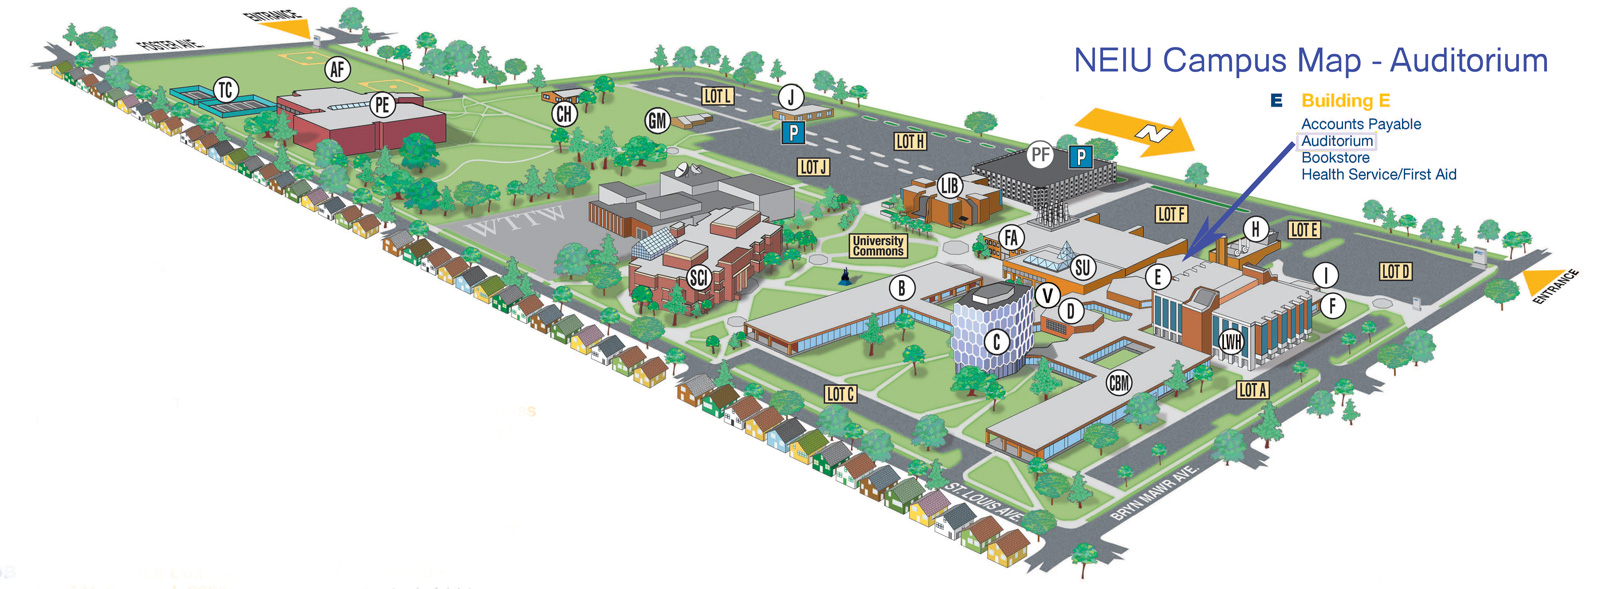 Campus Map   NEIU Auditorium